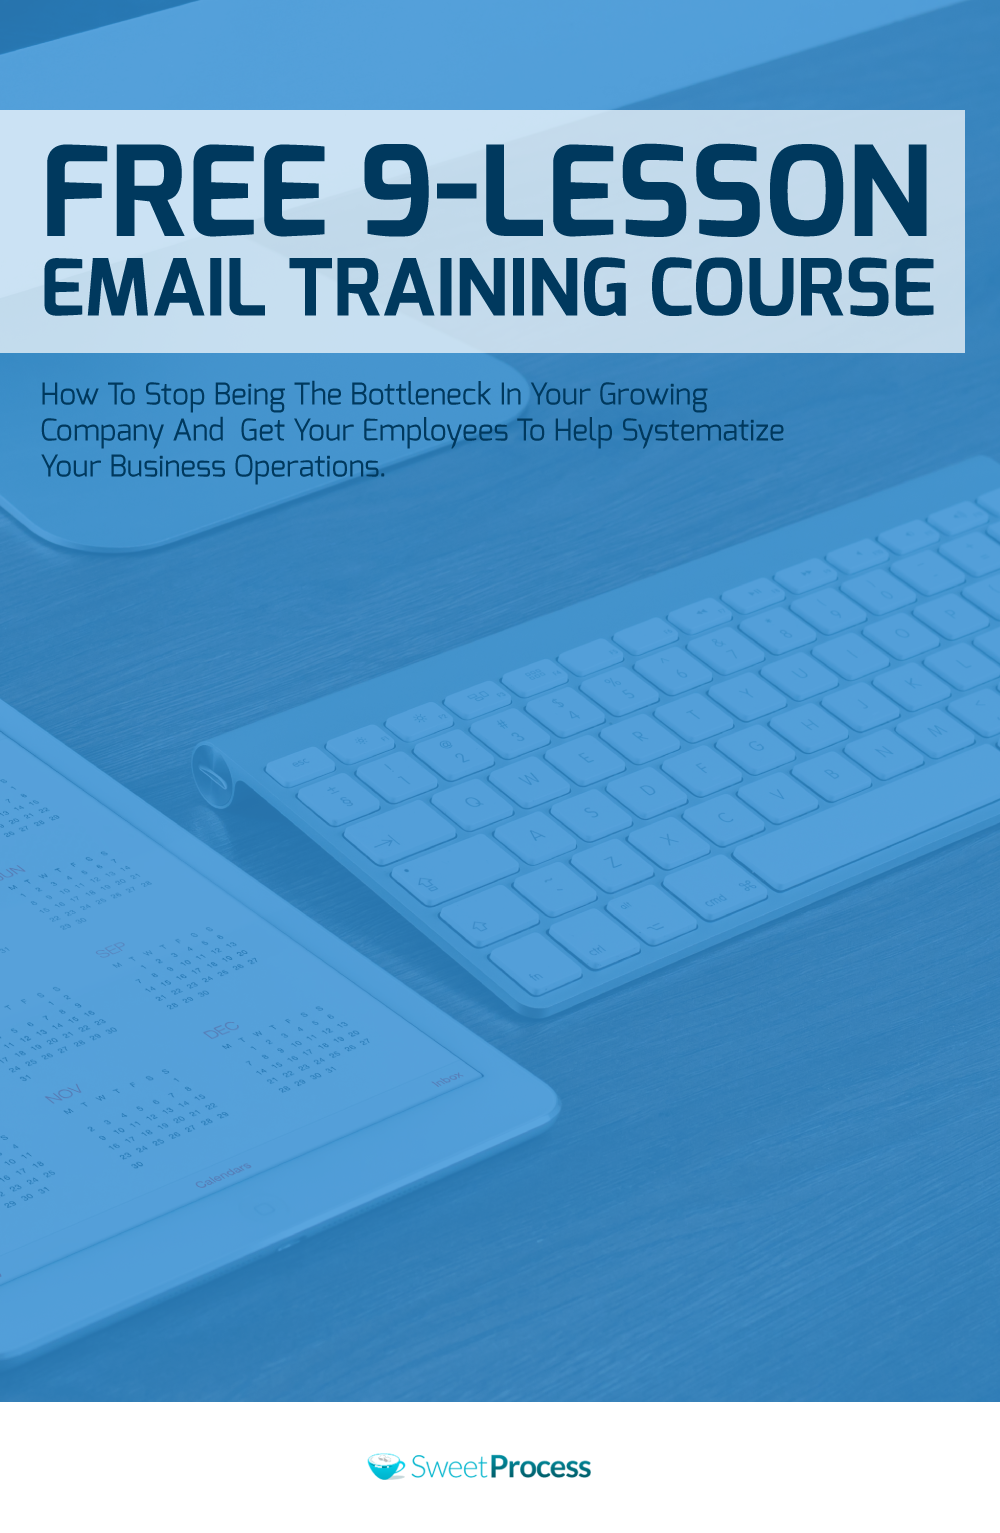 Free 9-Lesson Email Training Course